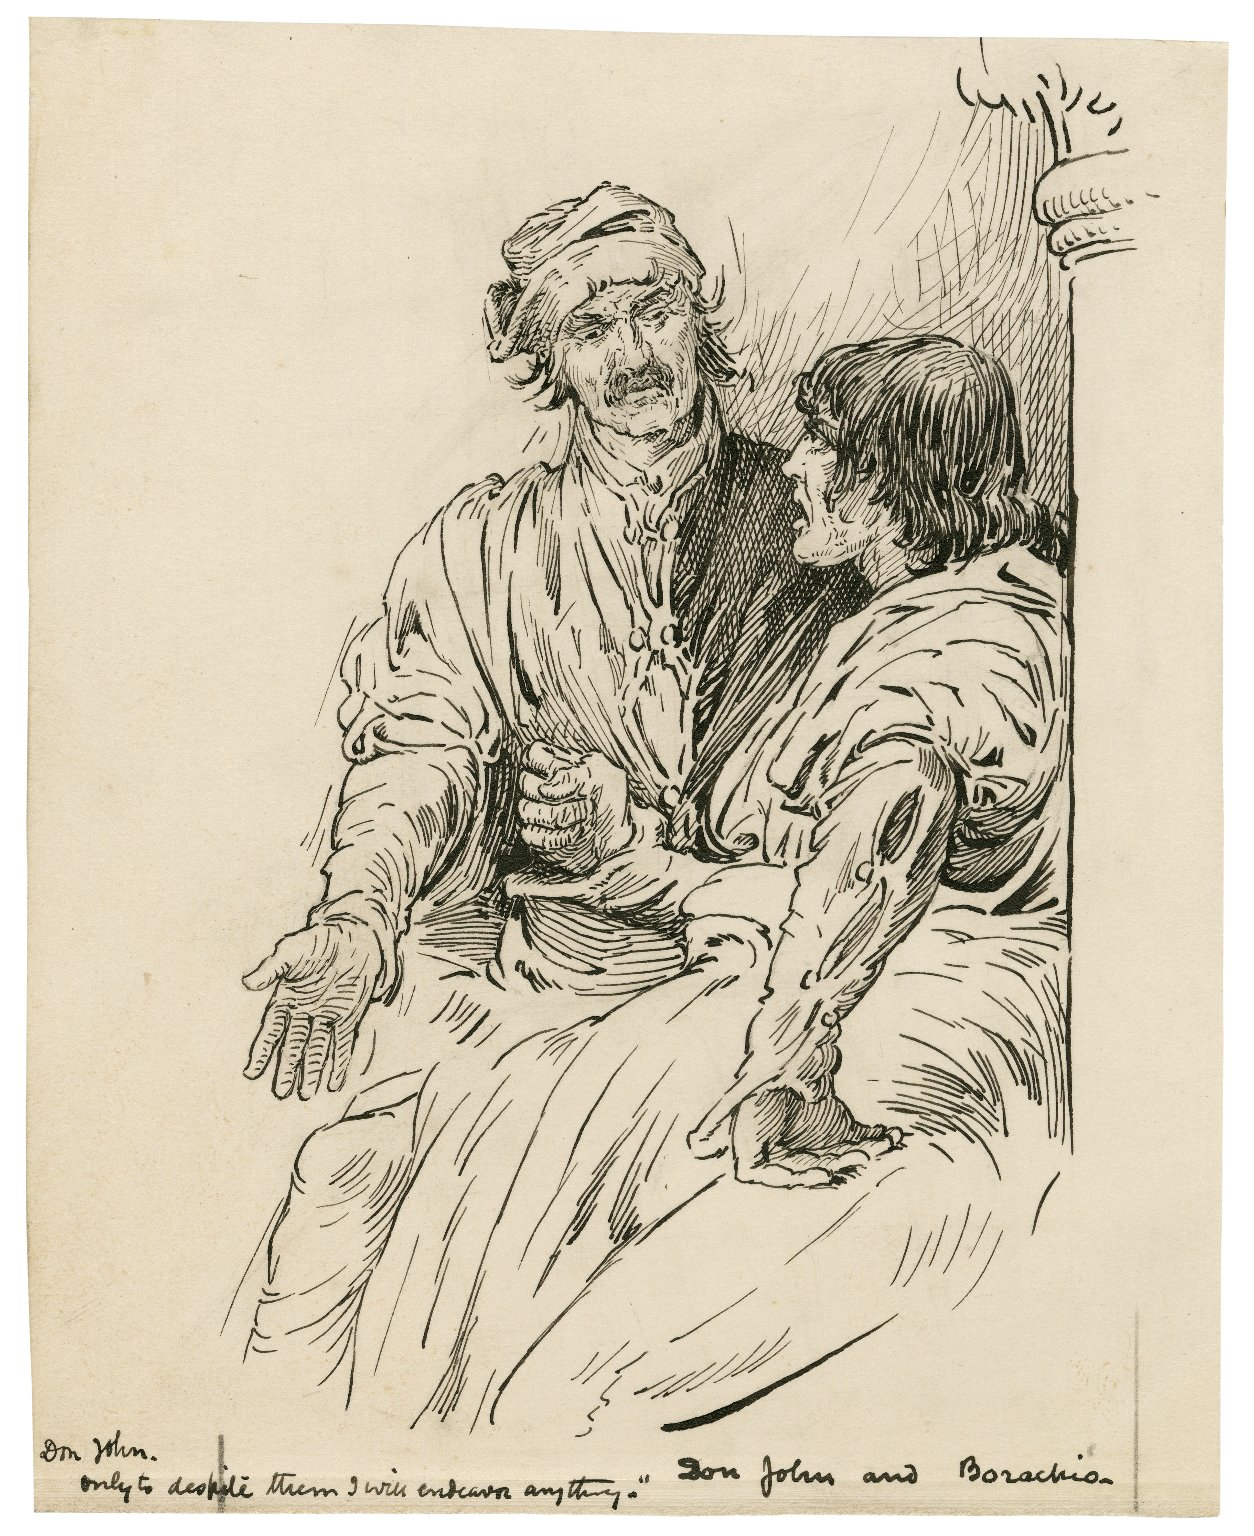 Don John and Borachio, Don John: Only to despite them I will endeavor anything [graphic] / [Louis Rhead].